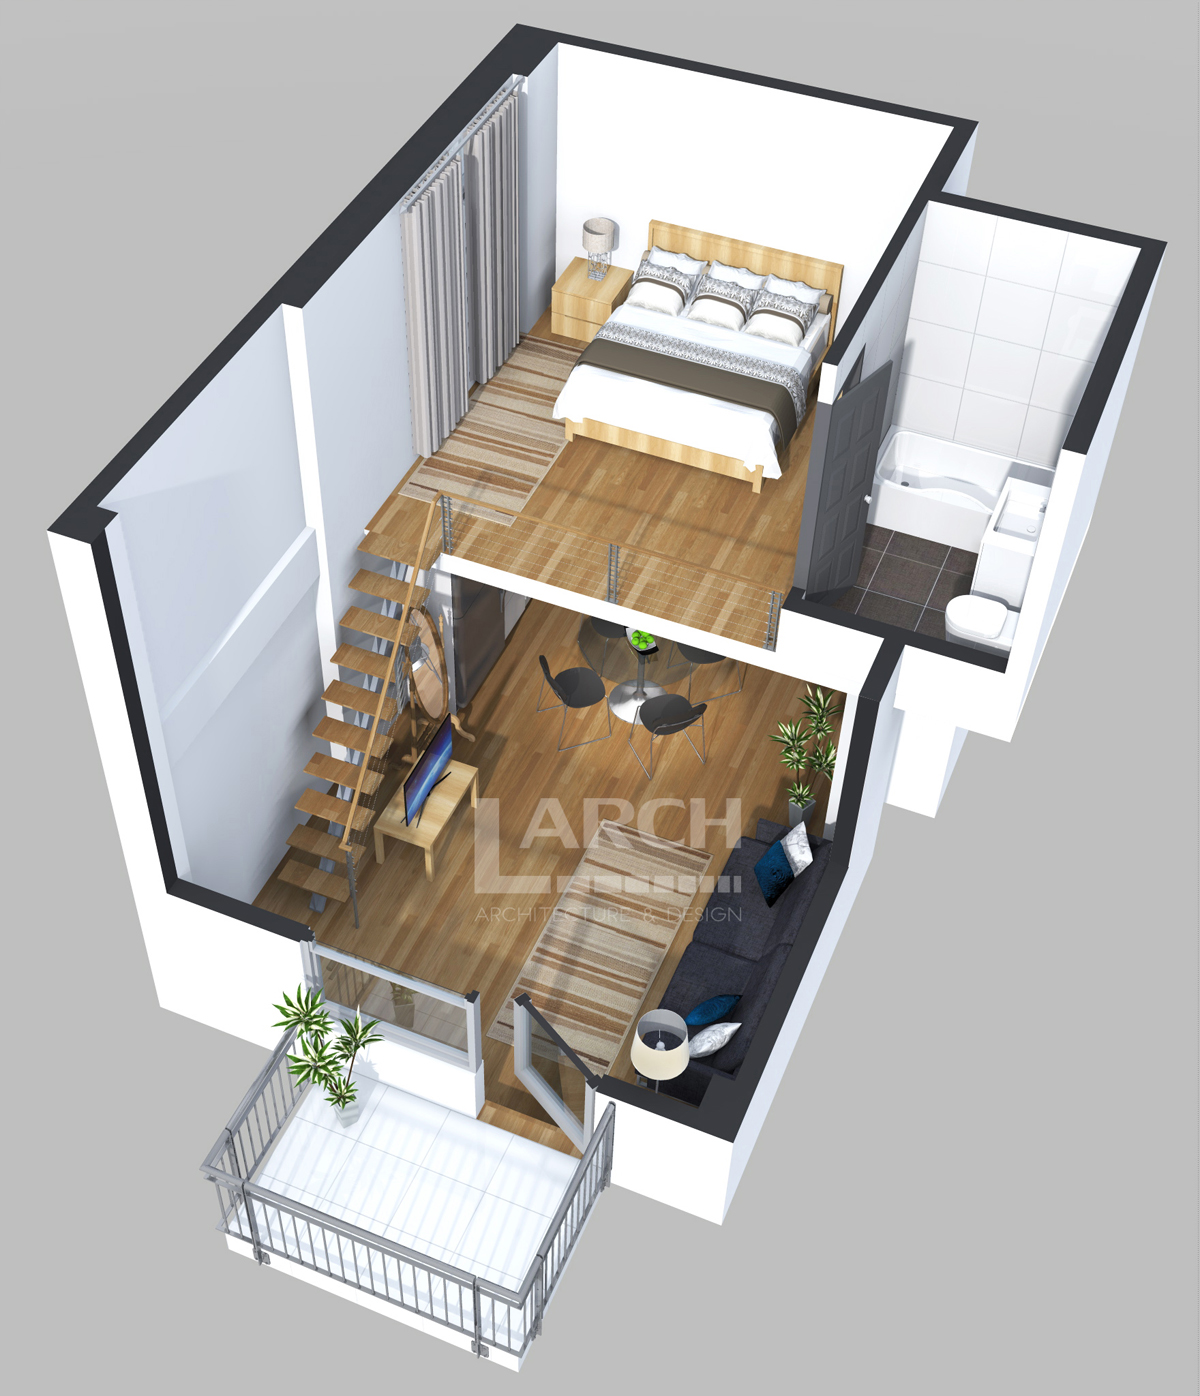 Photorealistic 3d Floor Plans For Real Estate Company L Arch